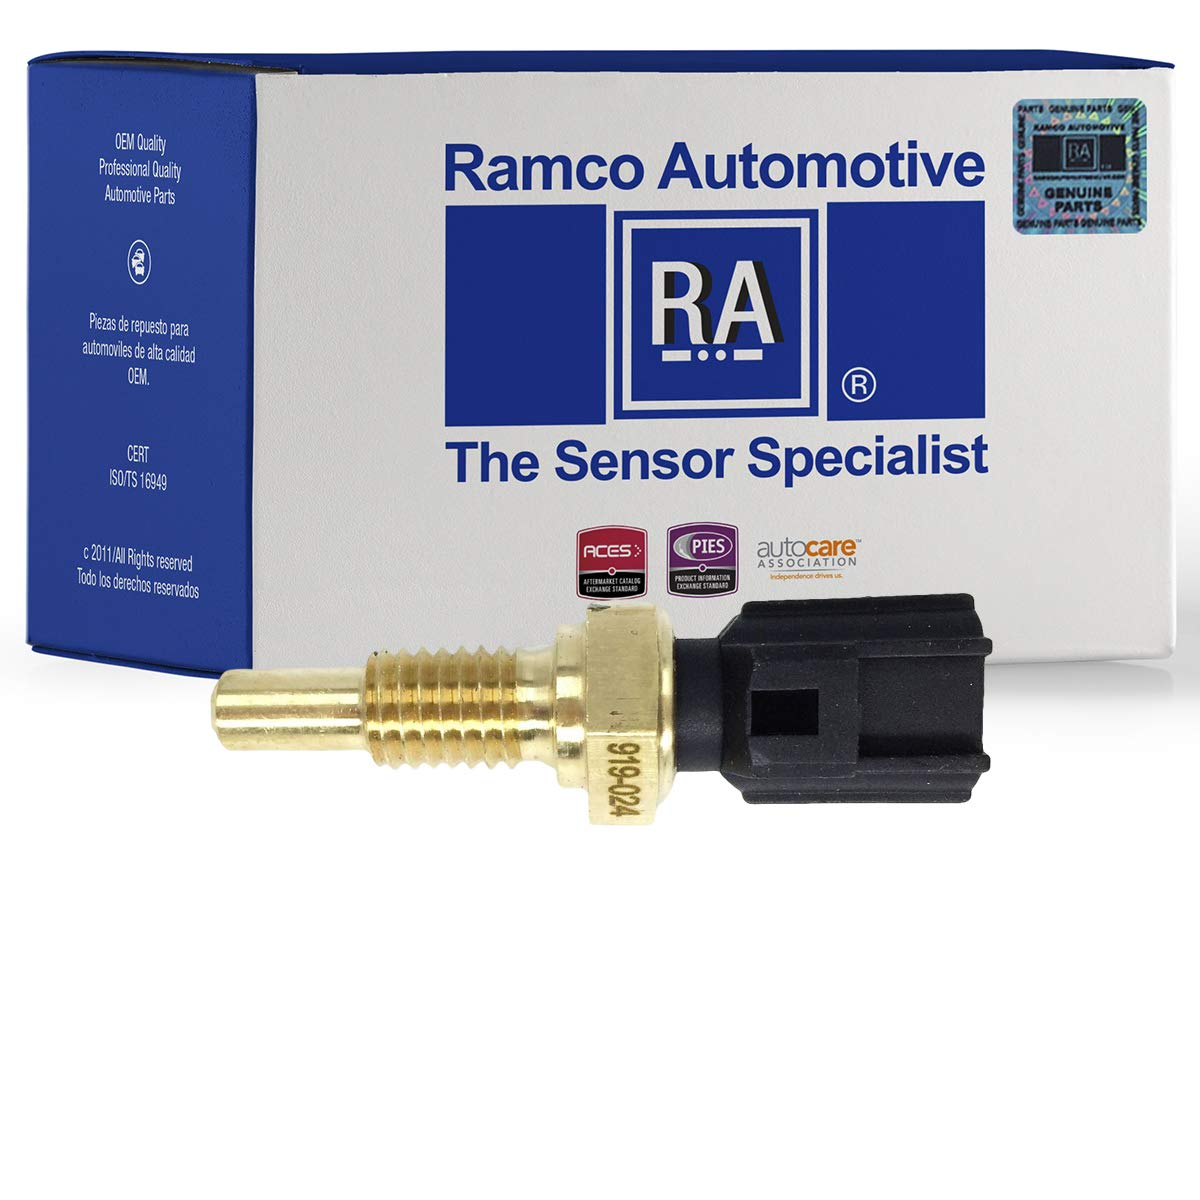 Compatible with Wells SU2188 Engine Cylinder Head Temperature Sensor RA-TS1076 Standard Motor Products TX91 Ramco Automotive